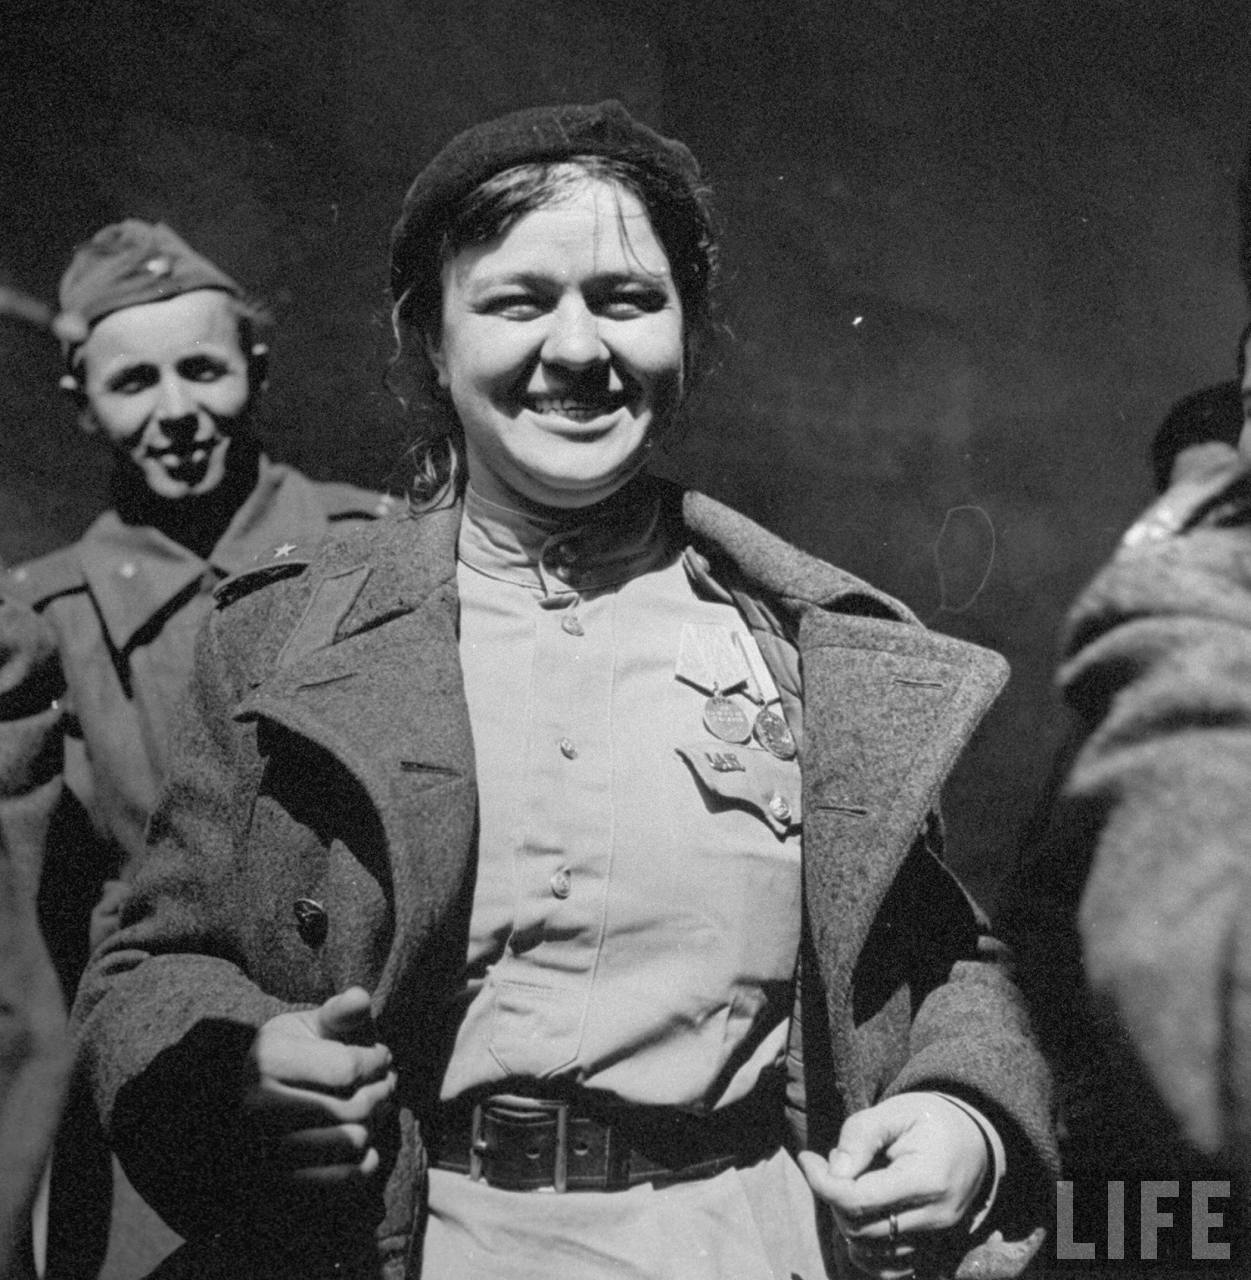 Female Russian soldier grinning broadly while showing off her medals and a US Army Officers insignia pinned to her shirt after the Allied troops met following the fall of Berlin.